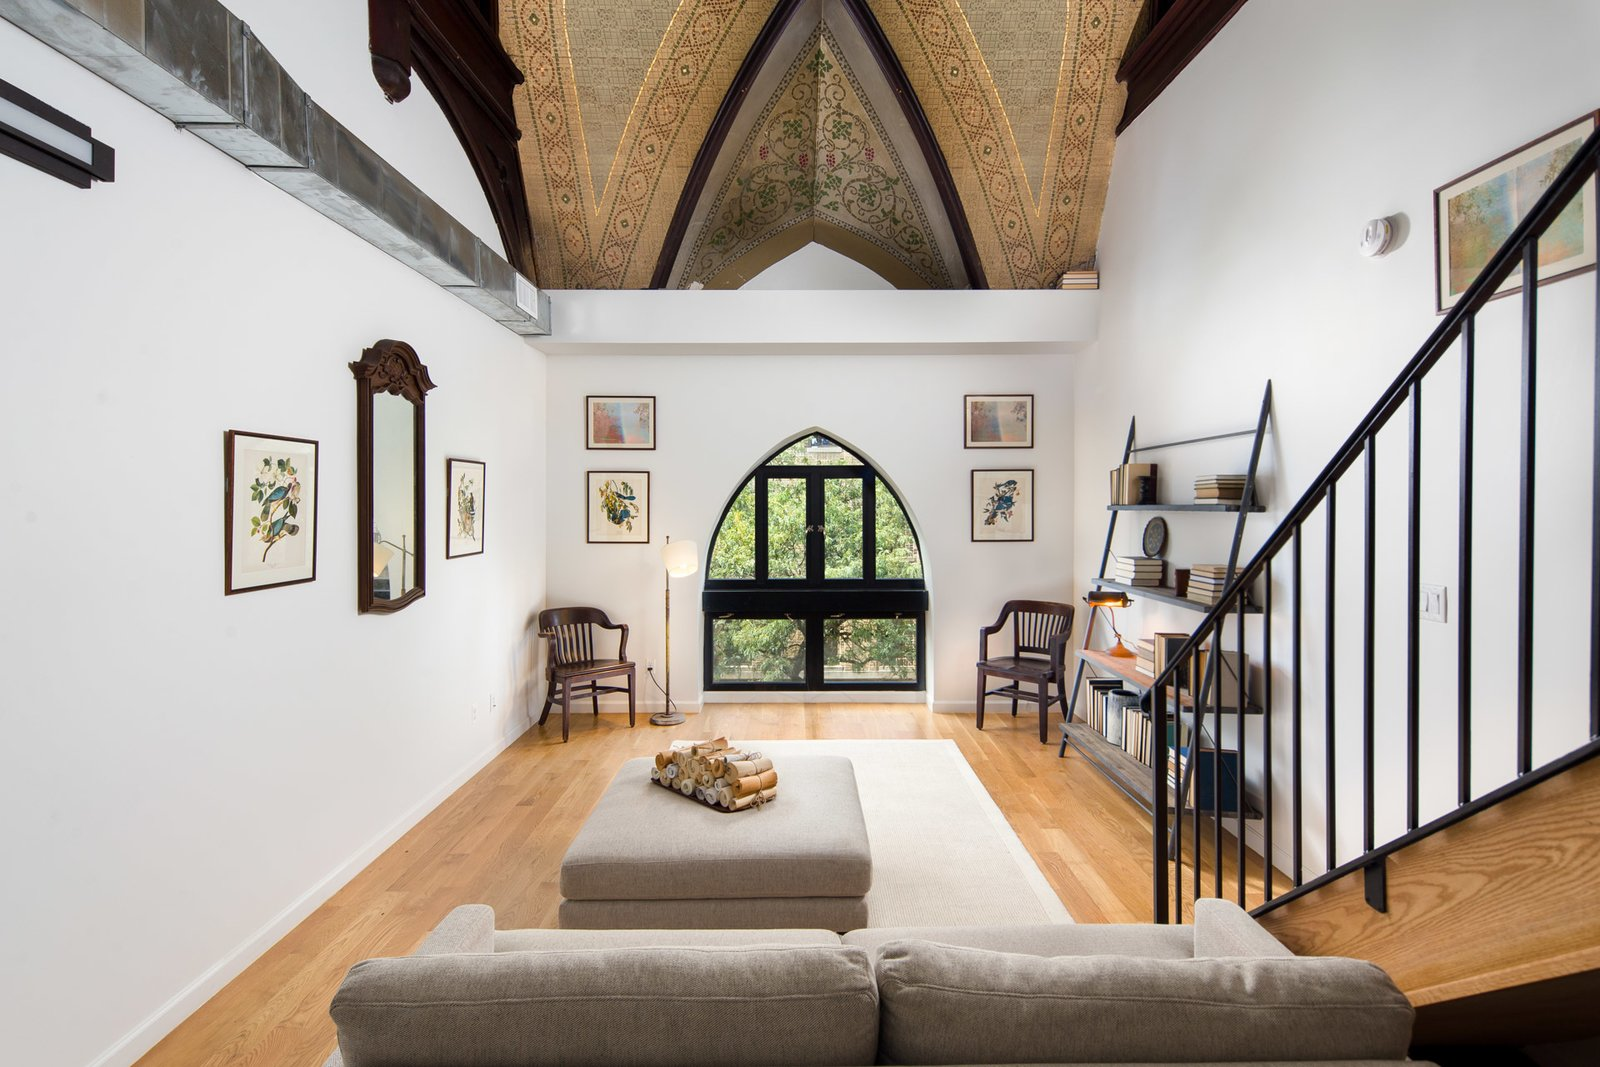 big home designs. Rent One of These Stunning Lofts in a Converted Brooklyn Church Modern living  home design ideas inspiration and advice Dwell